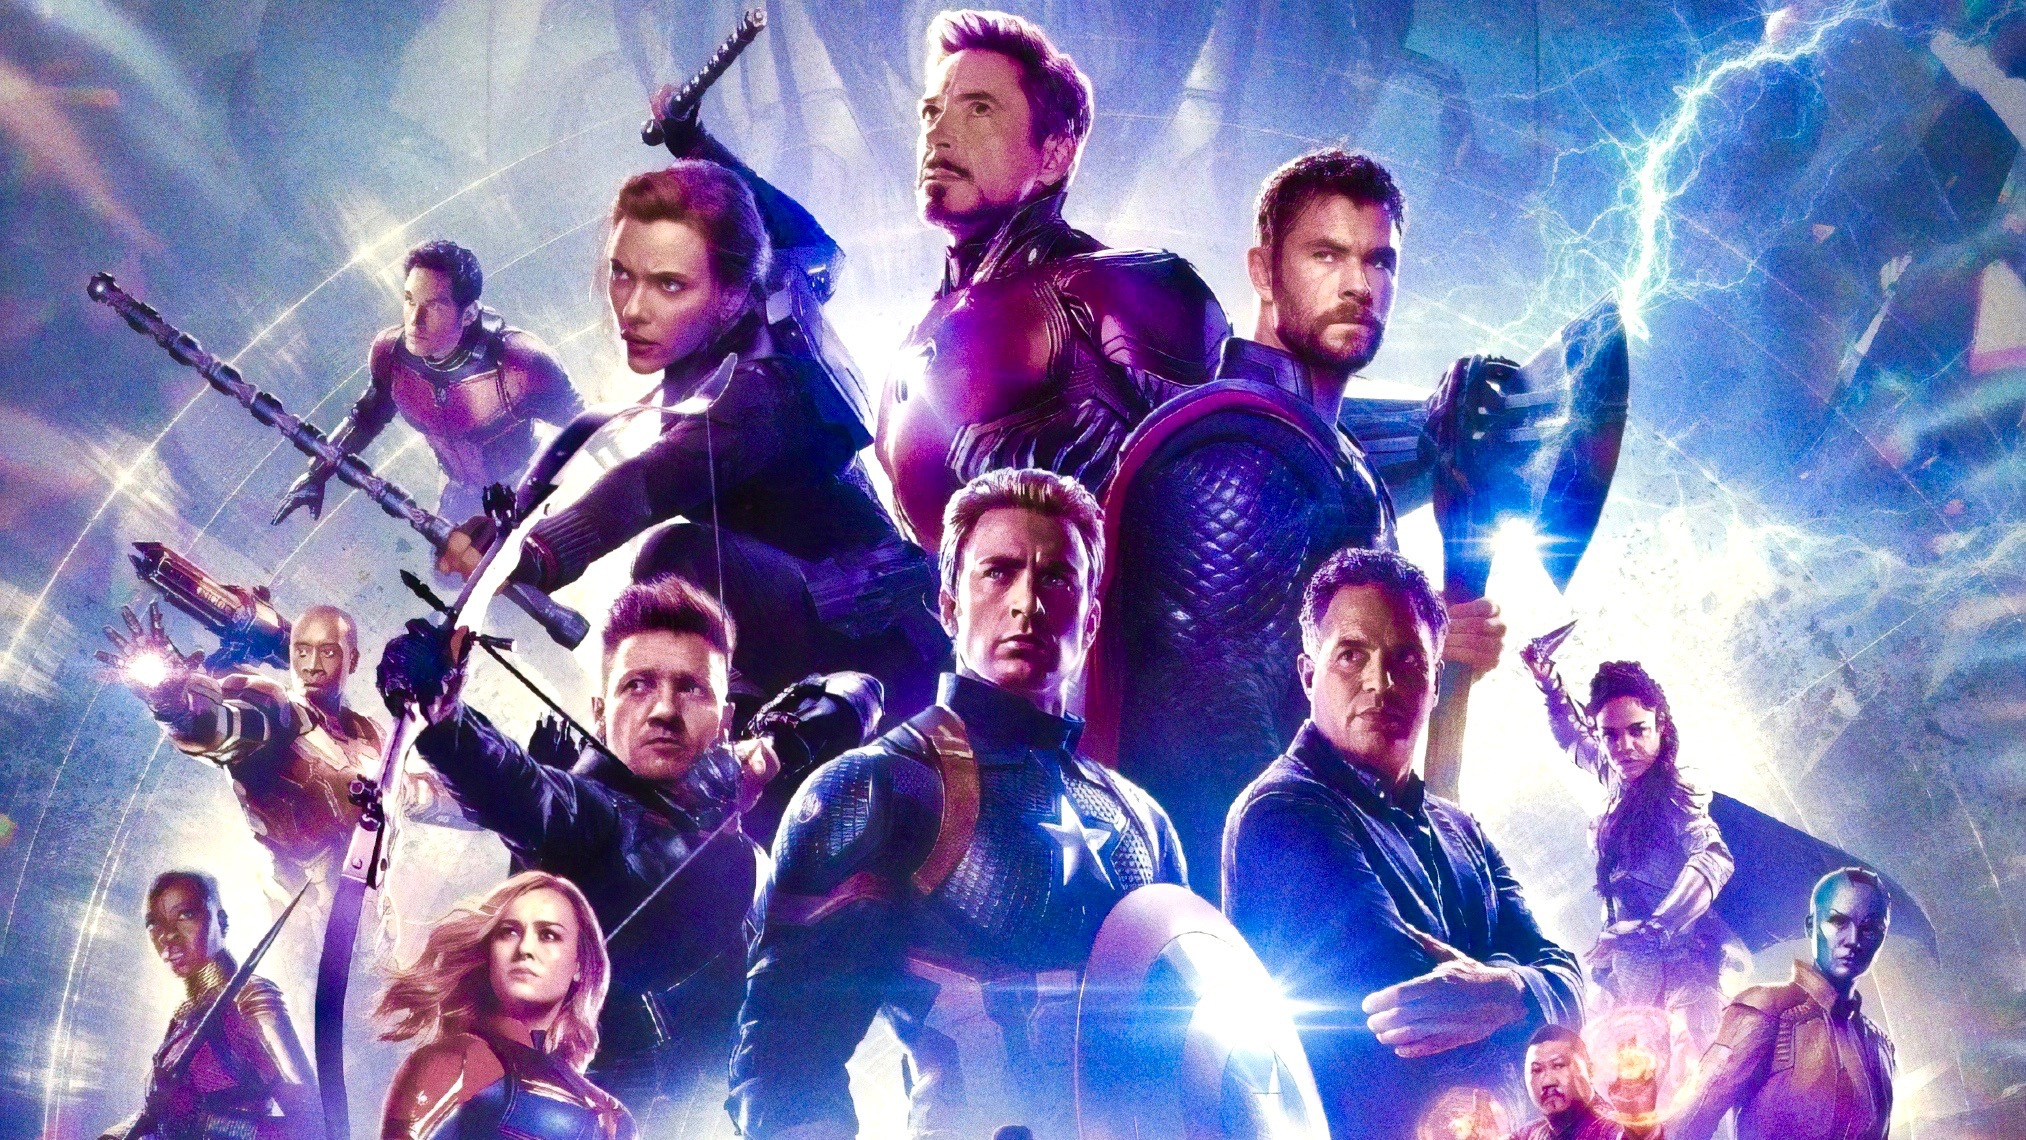 avengers: endgame 'Avengers: Endgame' Officially Beats 'Avatar' as Highest-Grossing Film of All Time Avengers Endgame Chinese poster